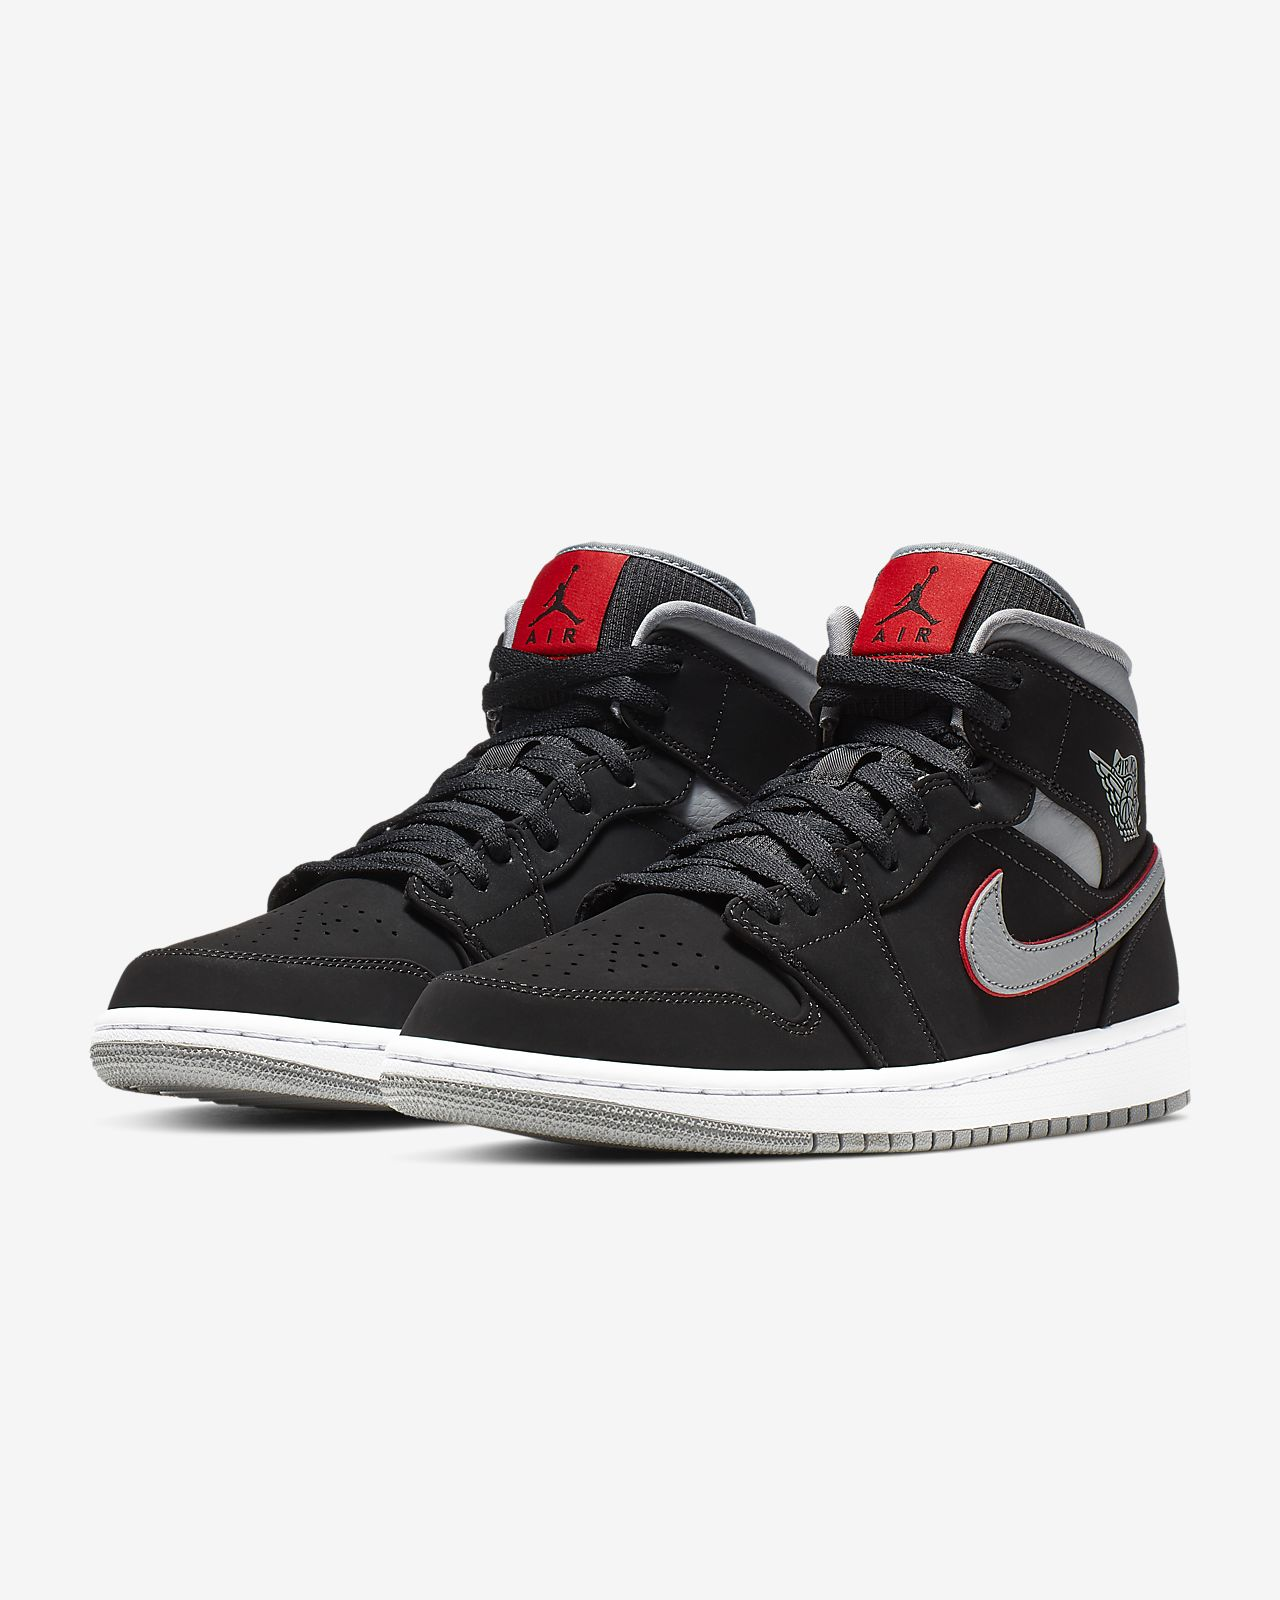 d68193d64b27 Low Resolution Air Jordan 1 Mid Men s Shoe Air Jordan 1 Mid Men s Shoe